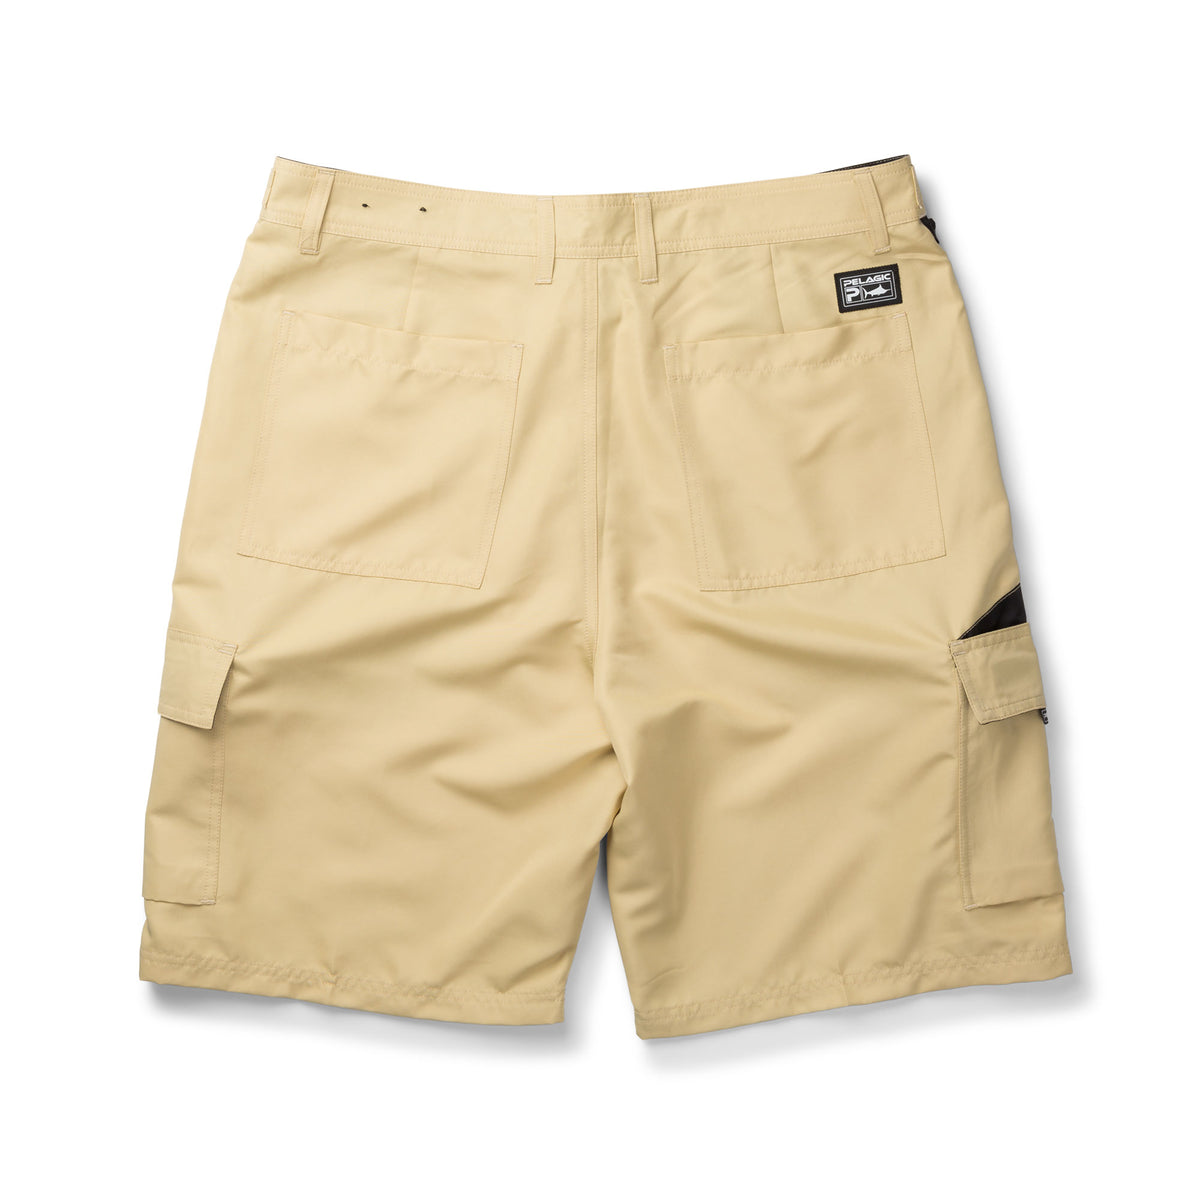 Socorro Hybrid Fishing Shorts Big Image - 2